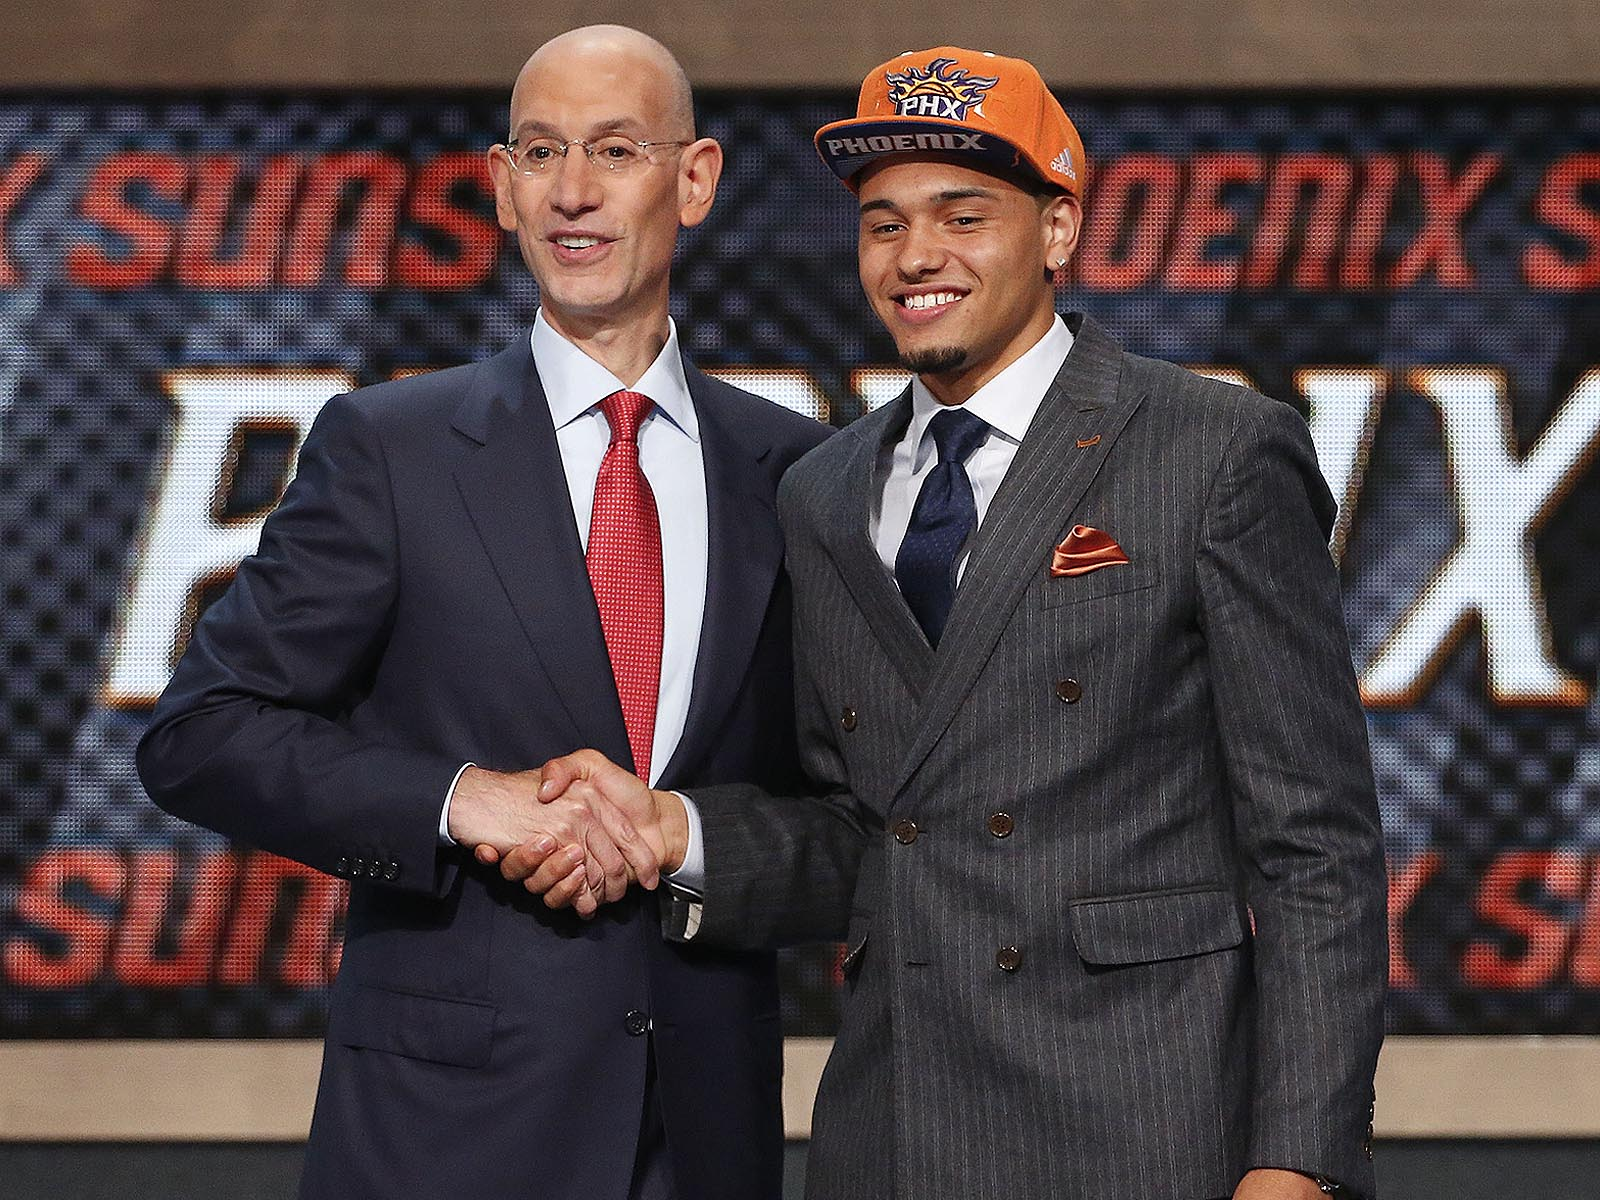 Not only does Ennis match the Suns orange with his pocket square, but the ex-Orange stands apart with a trendy double-breasted suit.